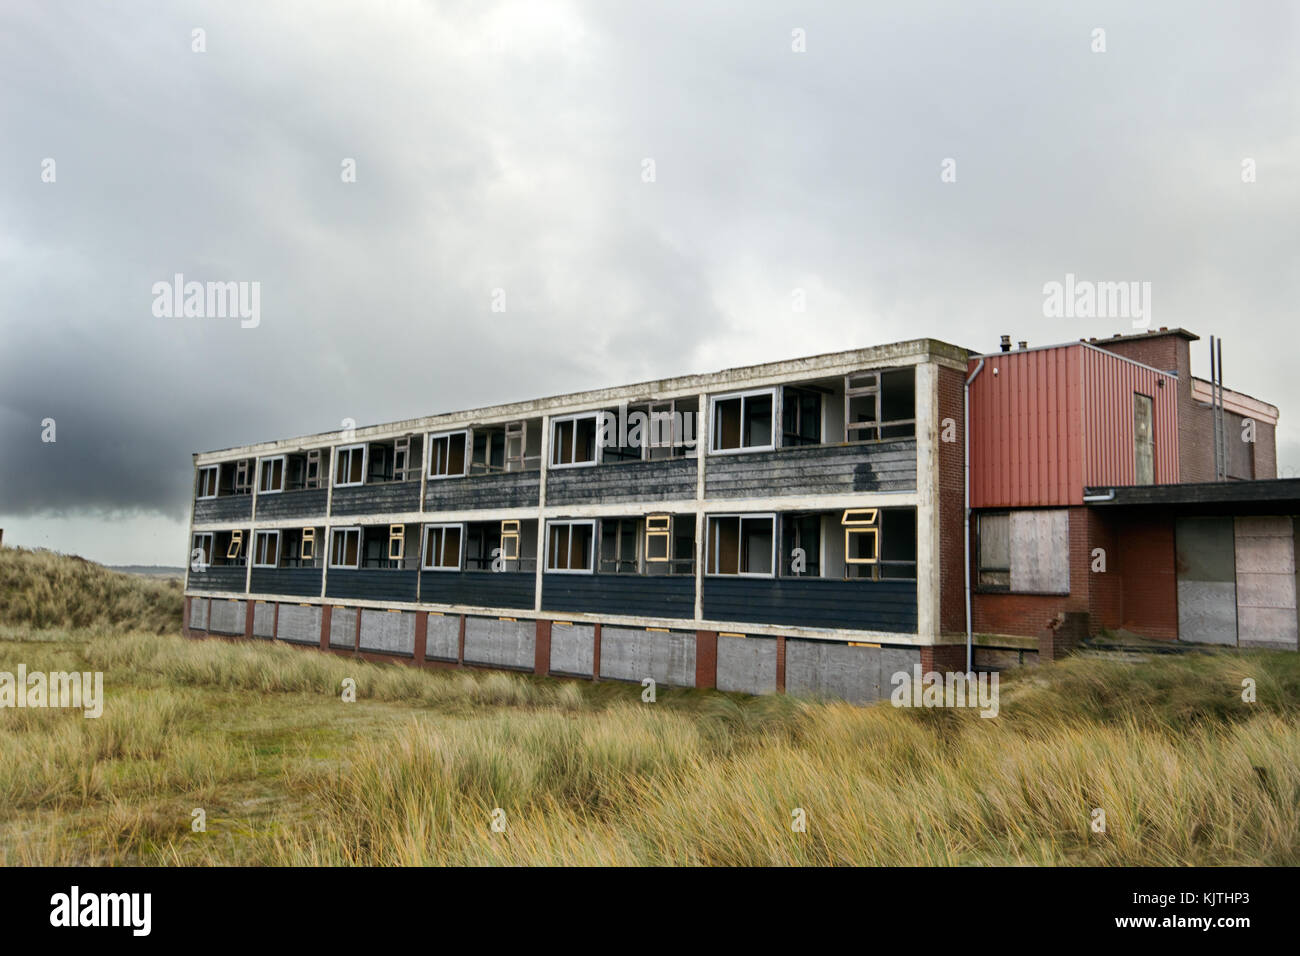 Old abandoned hotel in the dunes - Stock Image